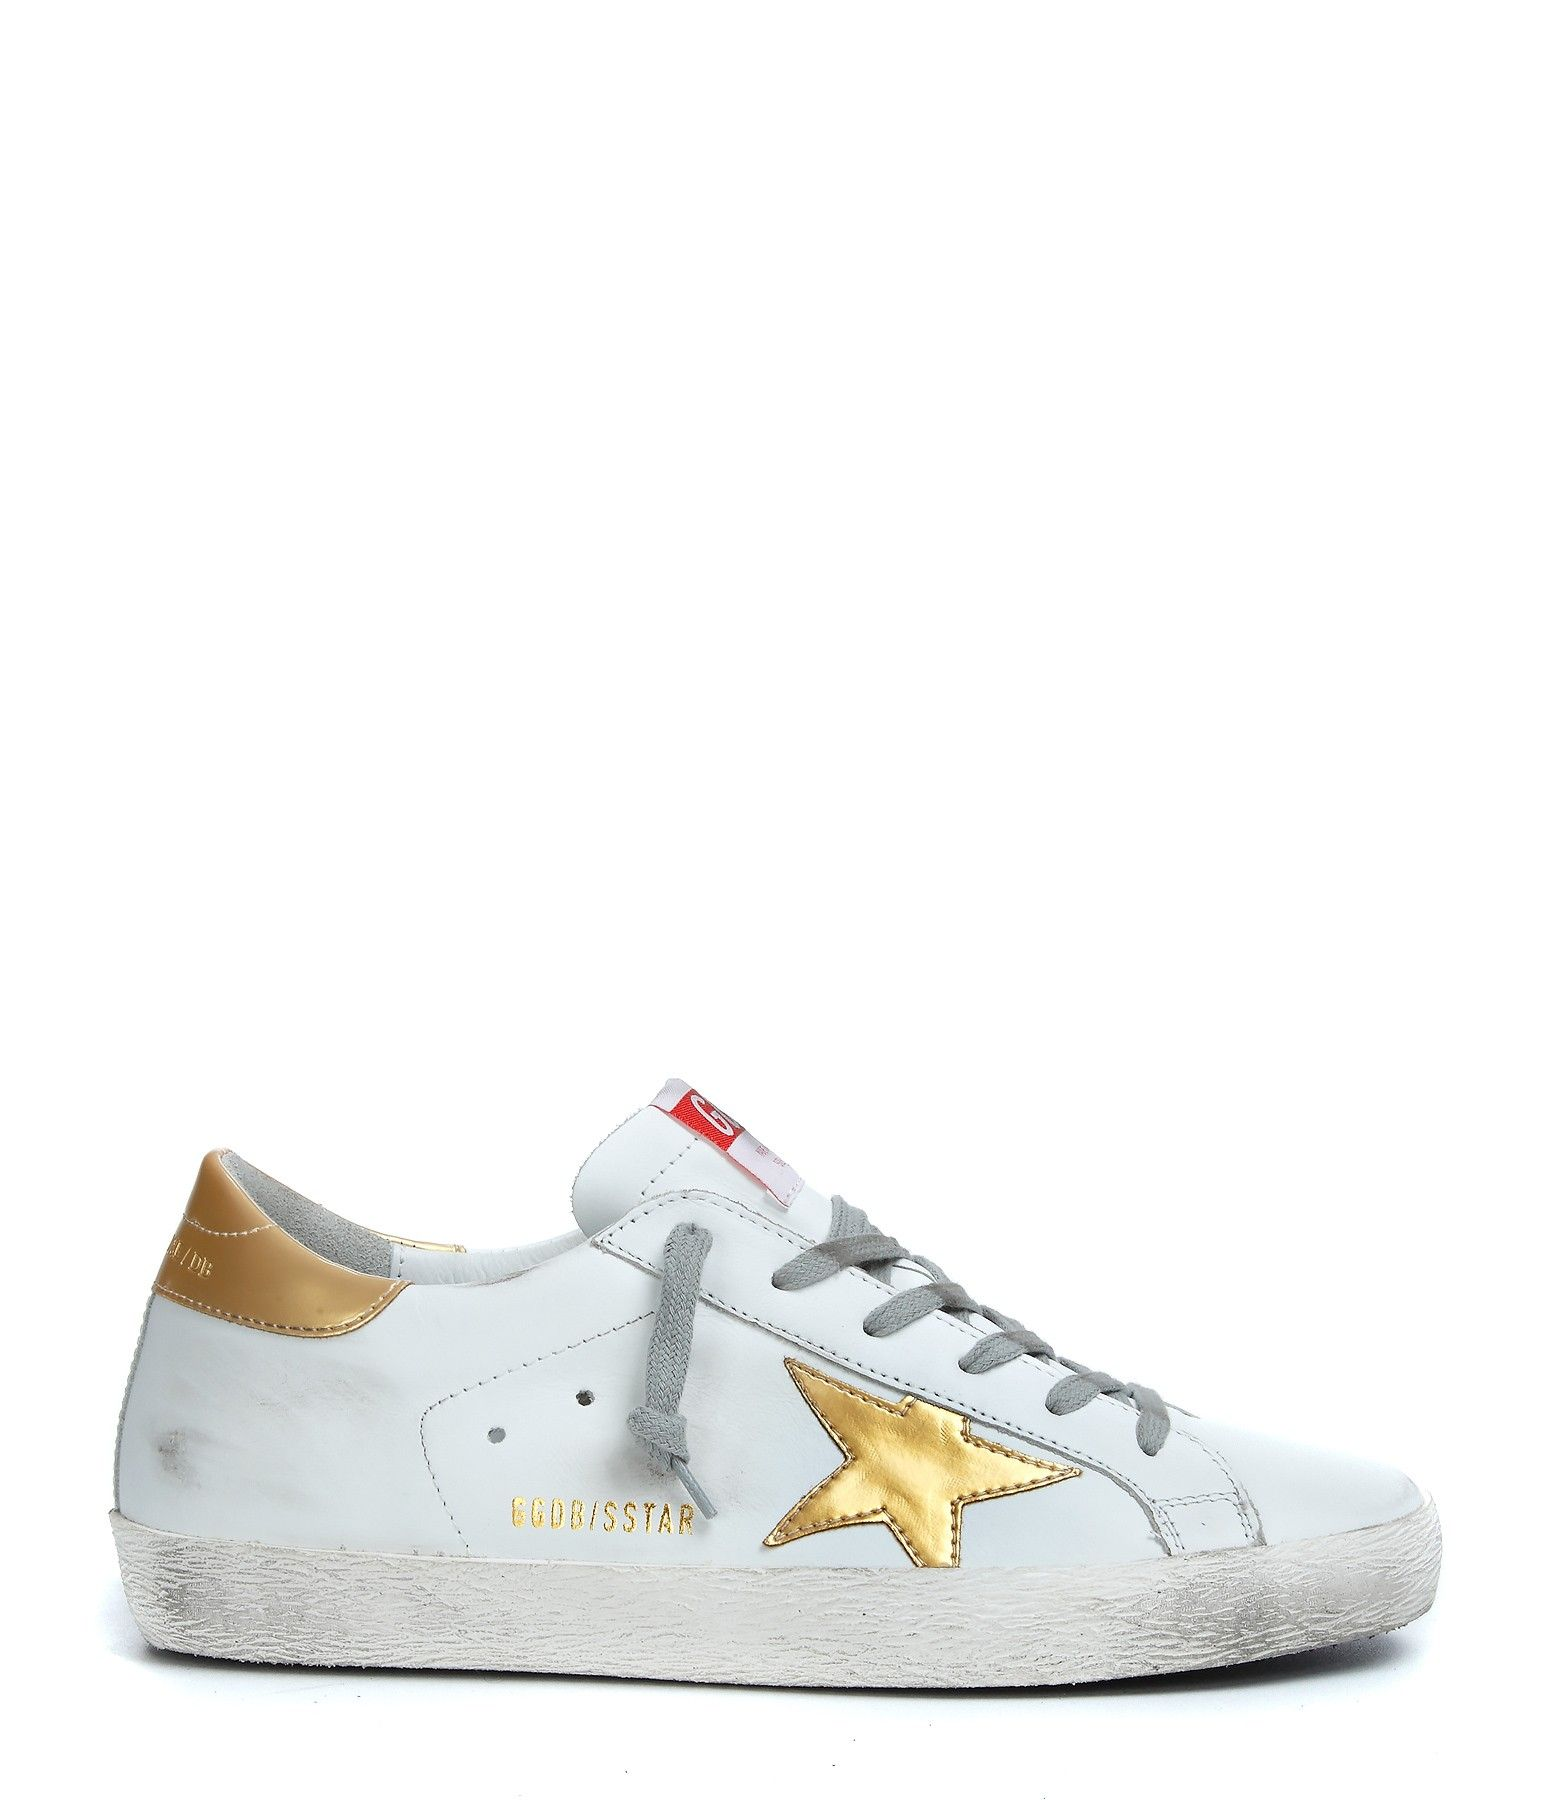 652f8974441 superstar rouge pharell pas cher occasions. adidas superstar femme taille  grand duc comment porter adidas superstar homme 033